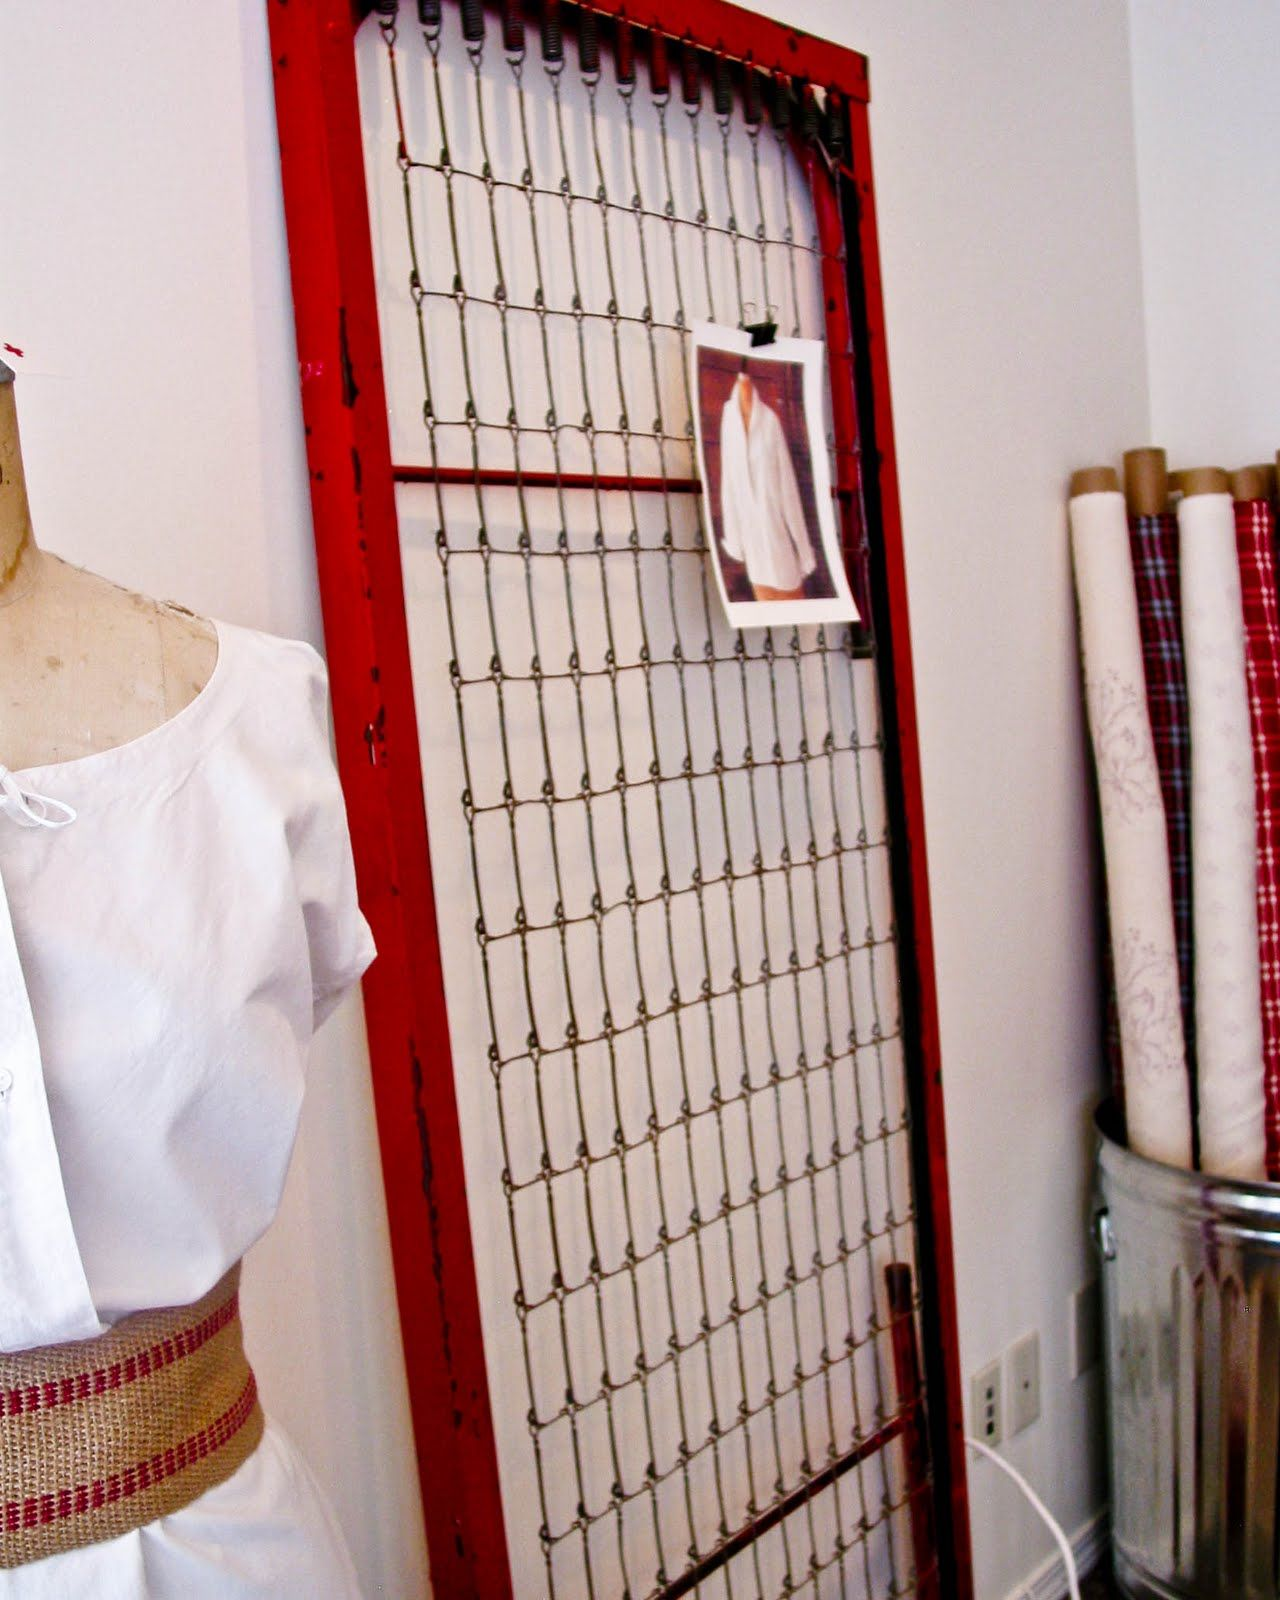 Vintage Bed Frame Cute Idea For Pinboard Or Jewelry Holder